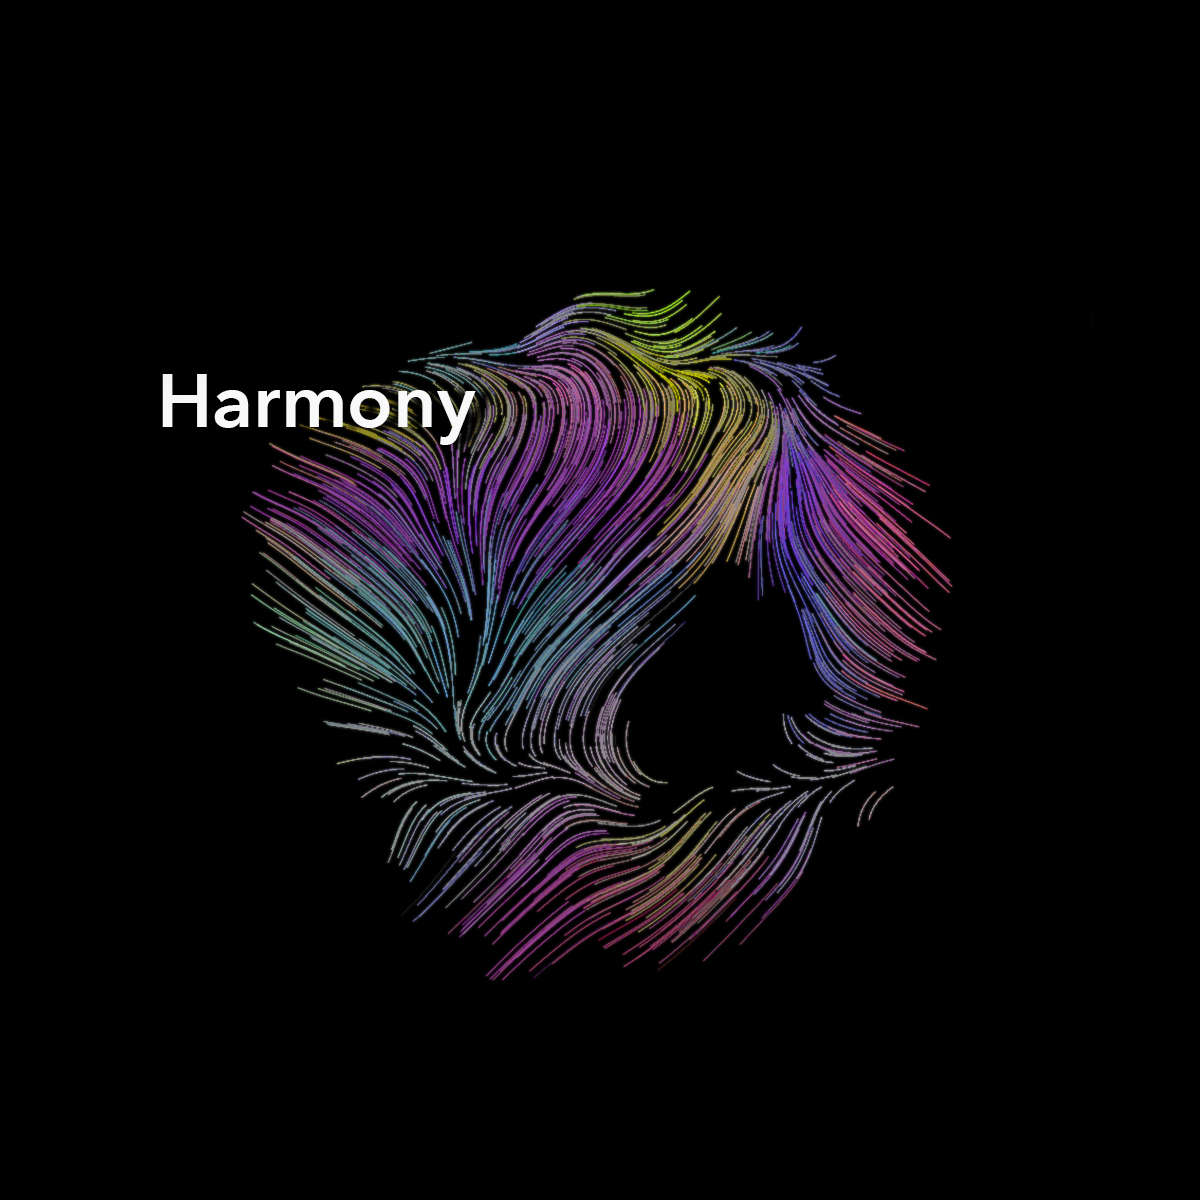 Harmony, a generative art project to explore the idea that order emerges from chaos